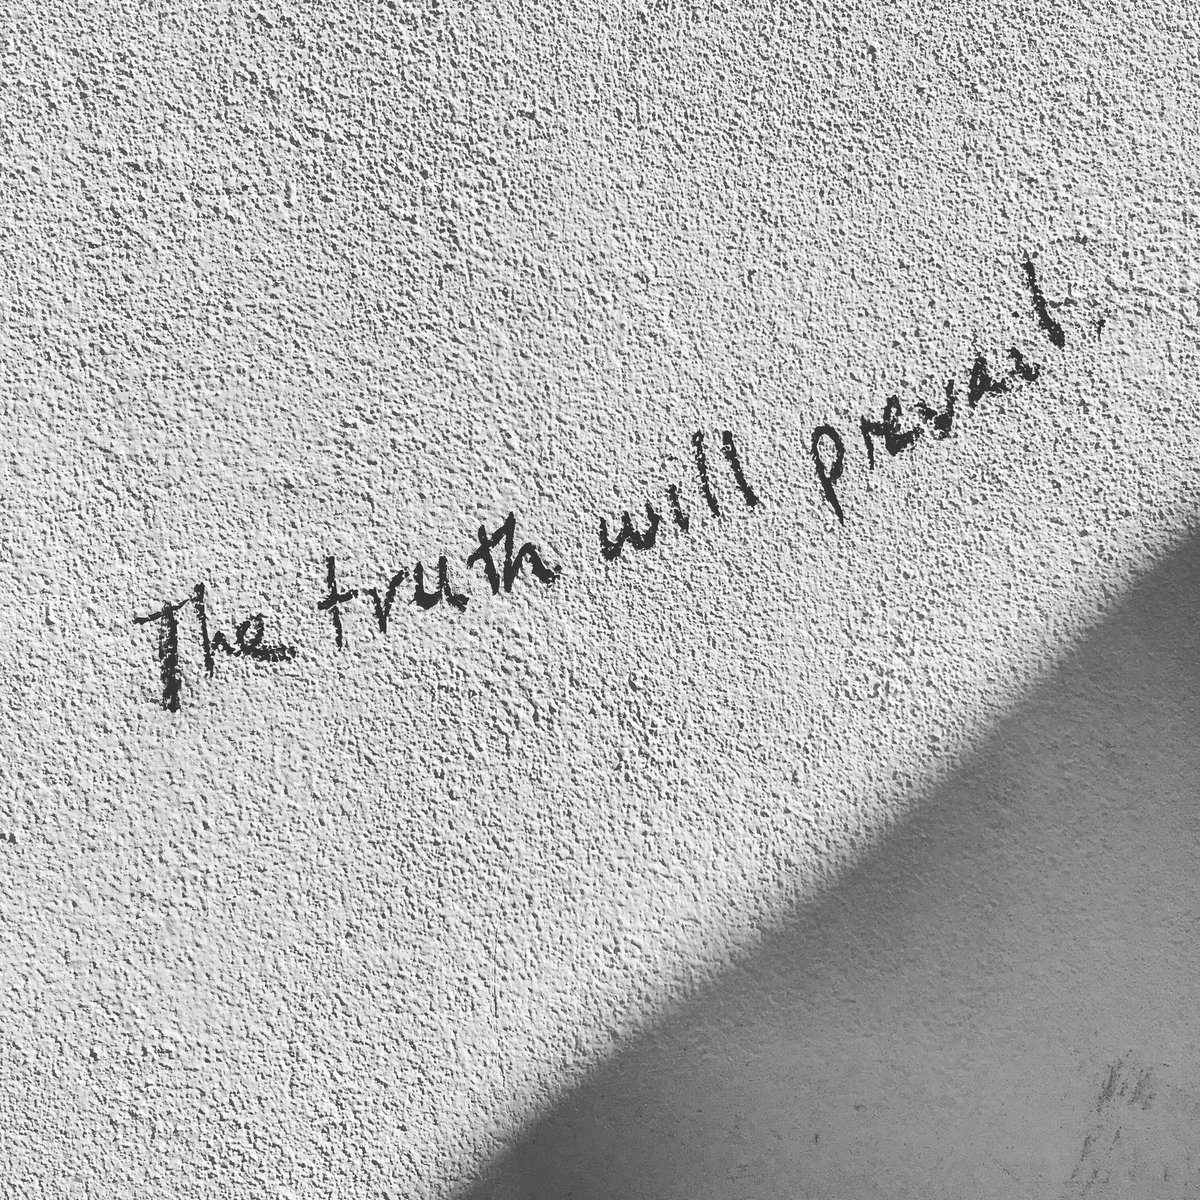 I have been reminded that a disturbing proportion of news material is based on hearsay and assumptions, not first person fact finding or research.  But I saw this reminder on a wall in my hood this morning ... #goodjournalismmatters #notyouropinion #truth